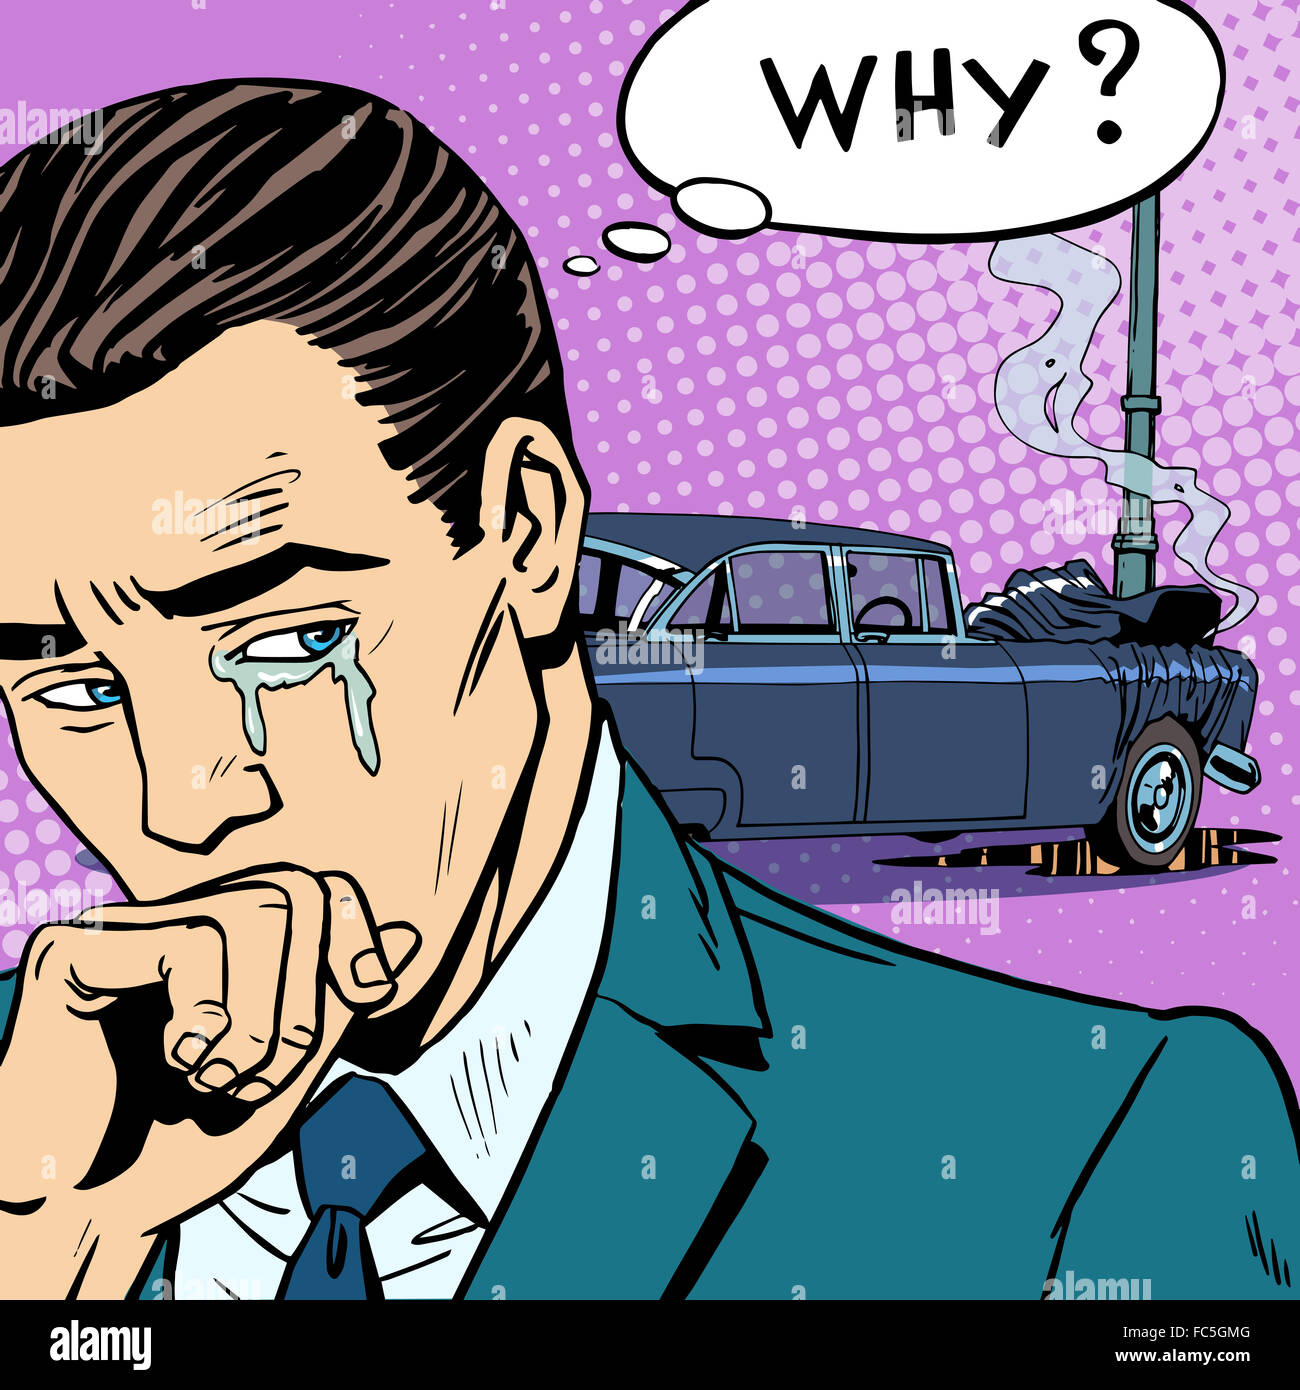 Man cries car accident - Stock Image